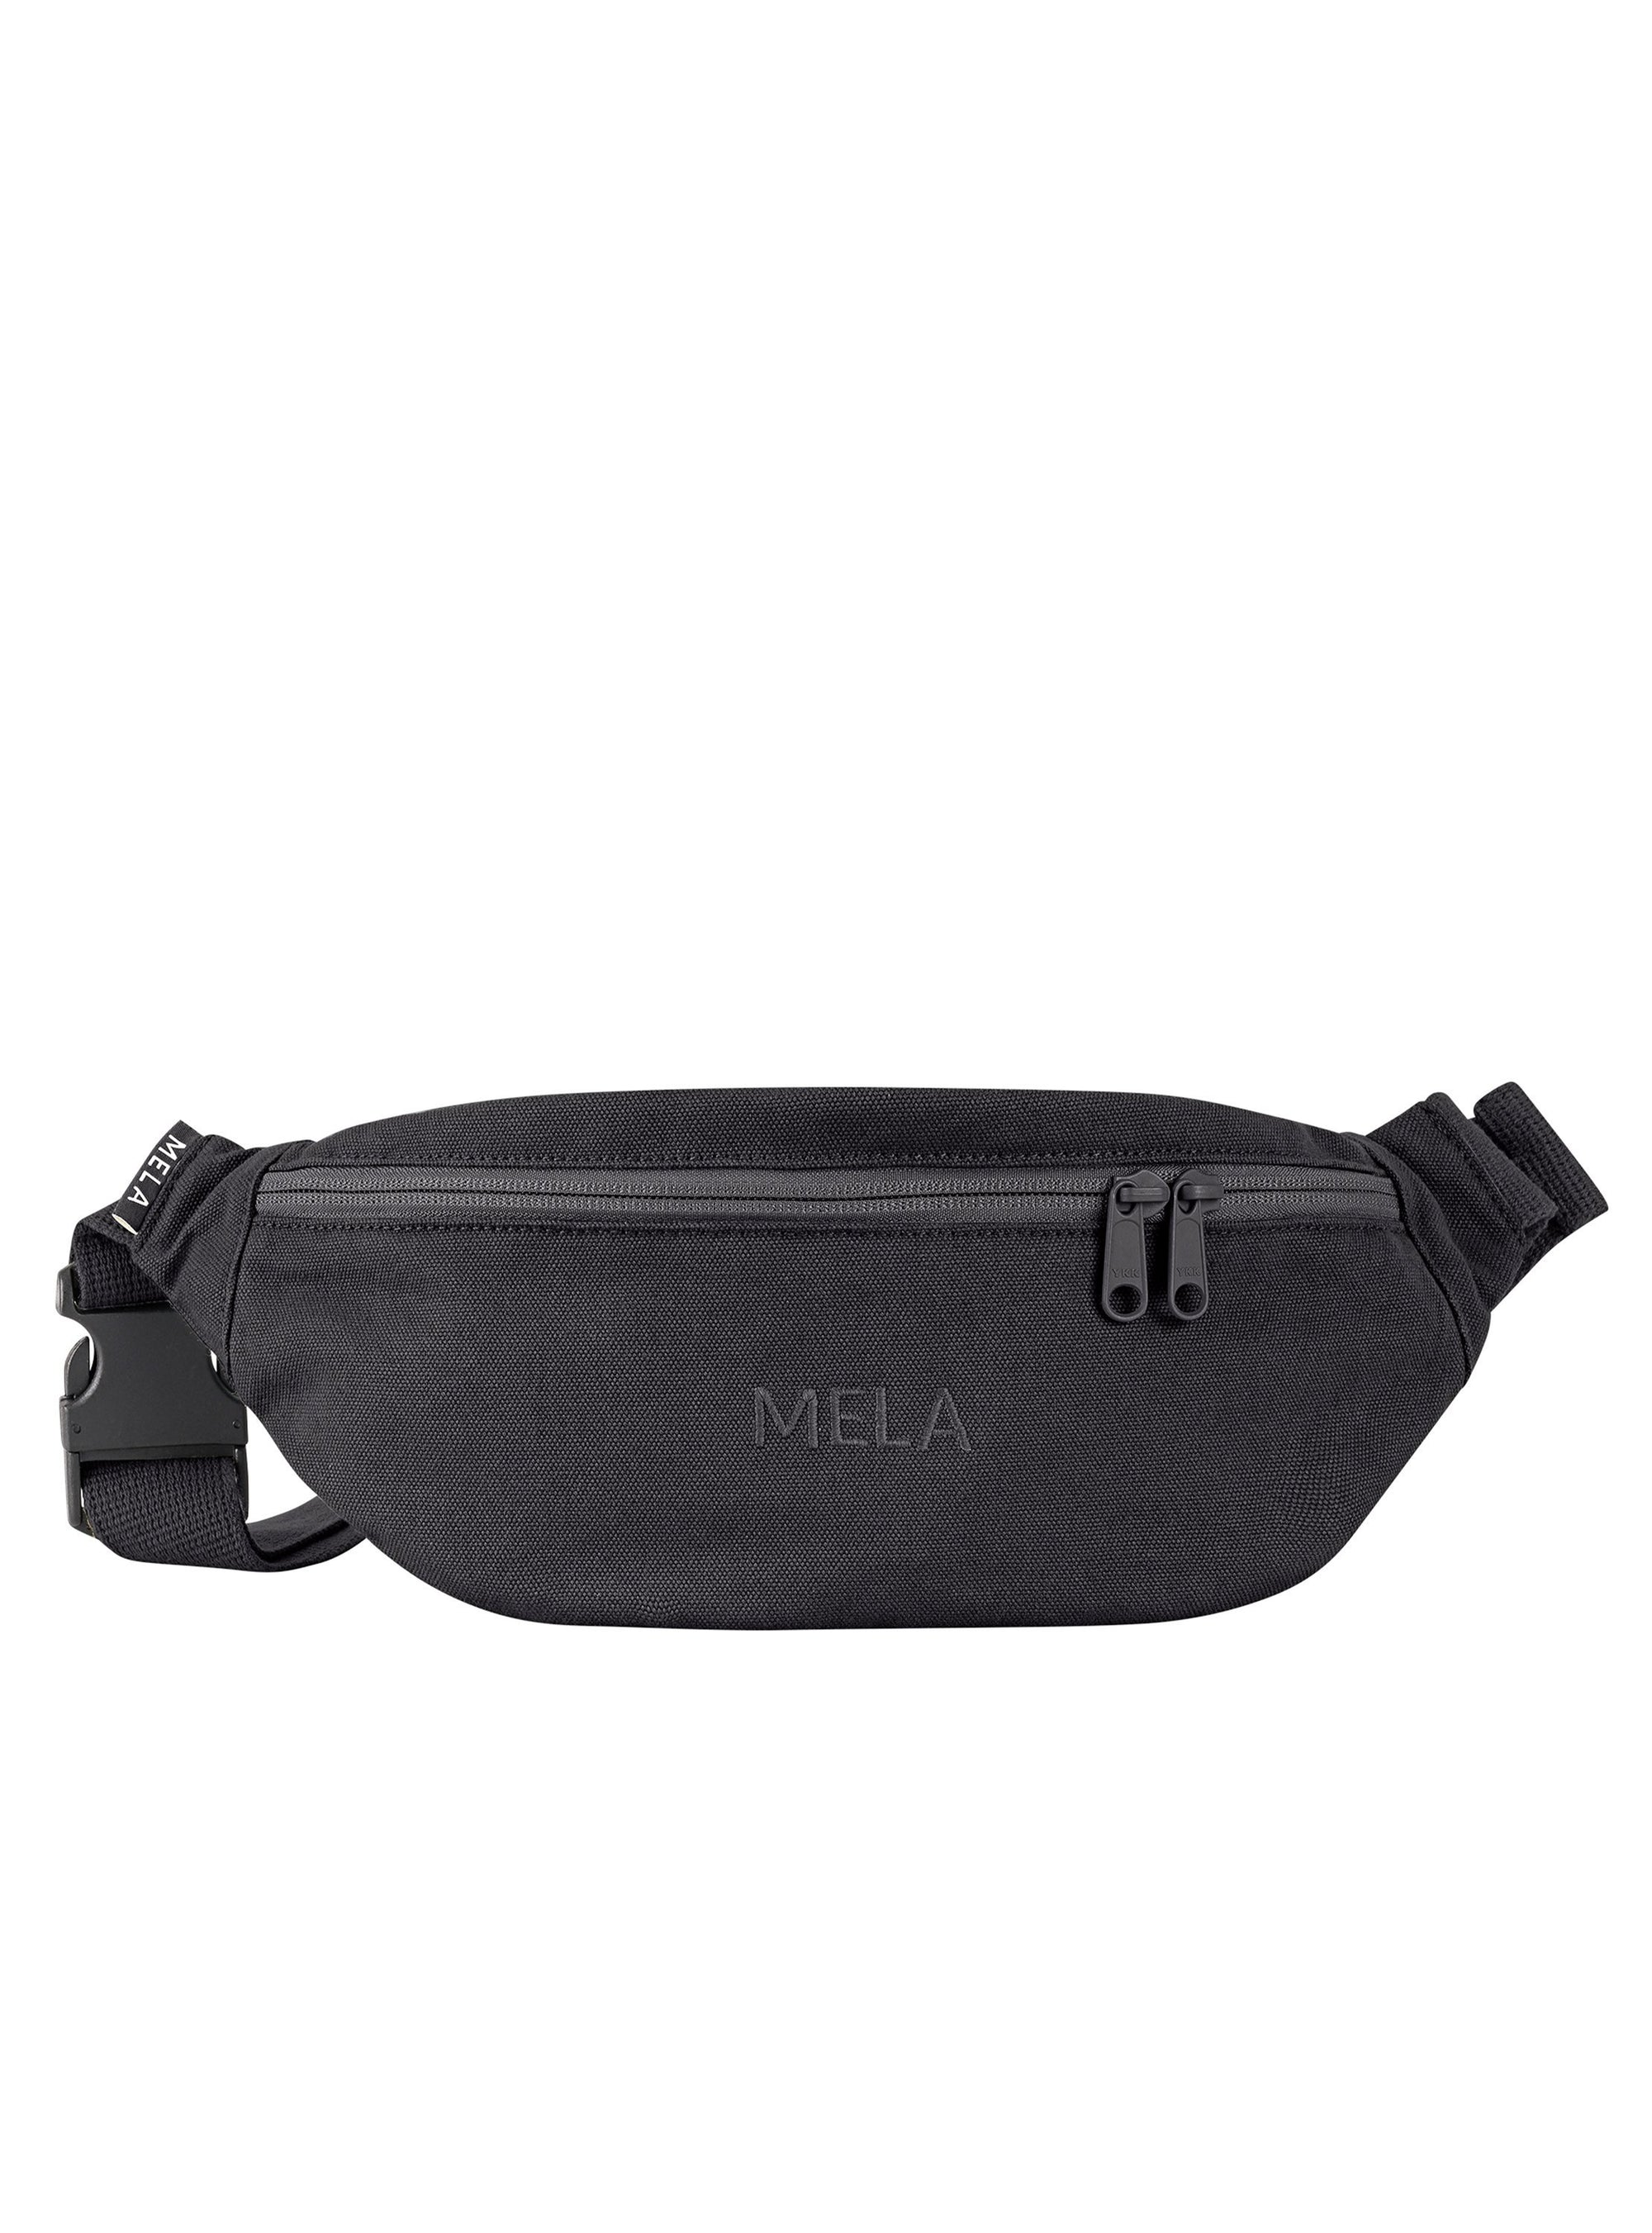 Bag - MOLGI Hip Bag Black